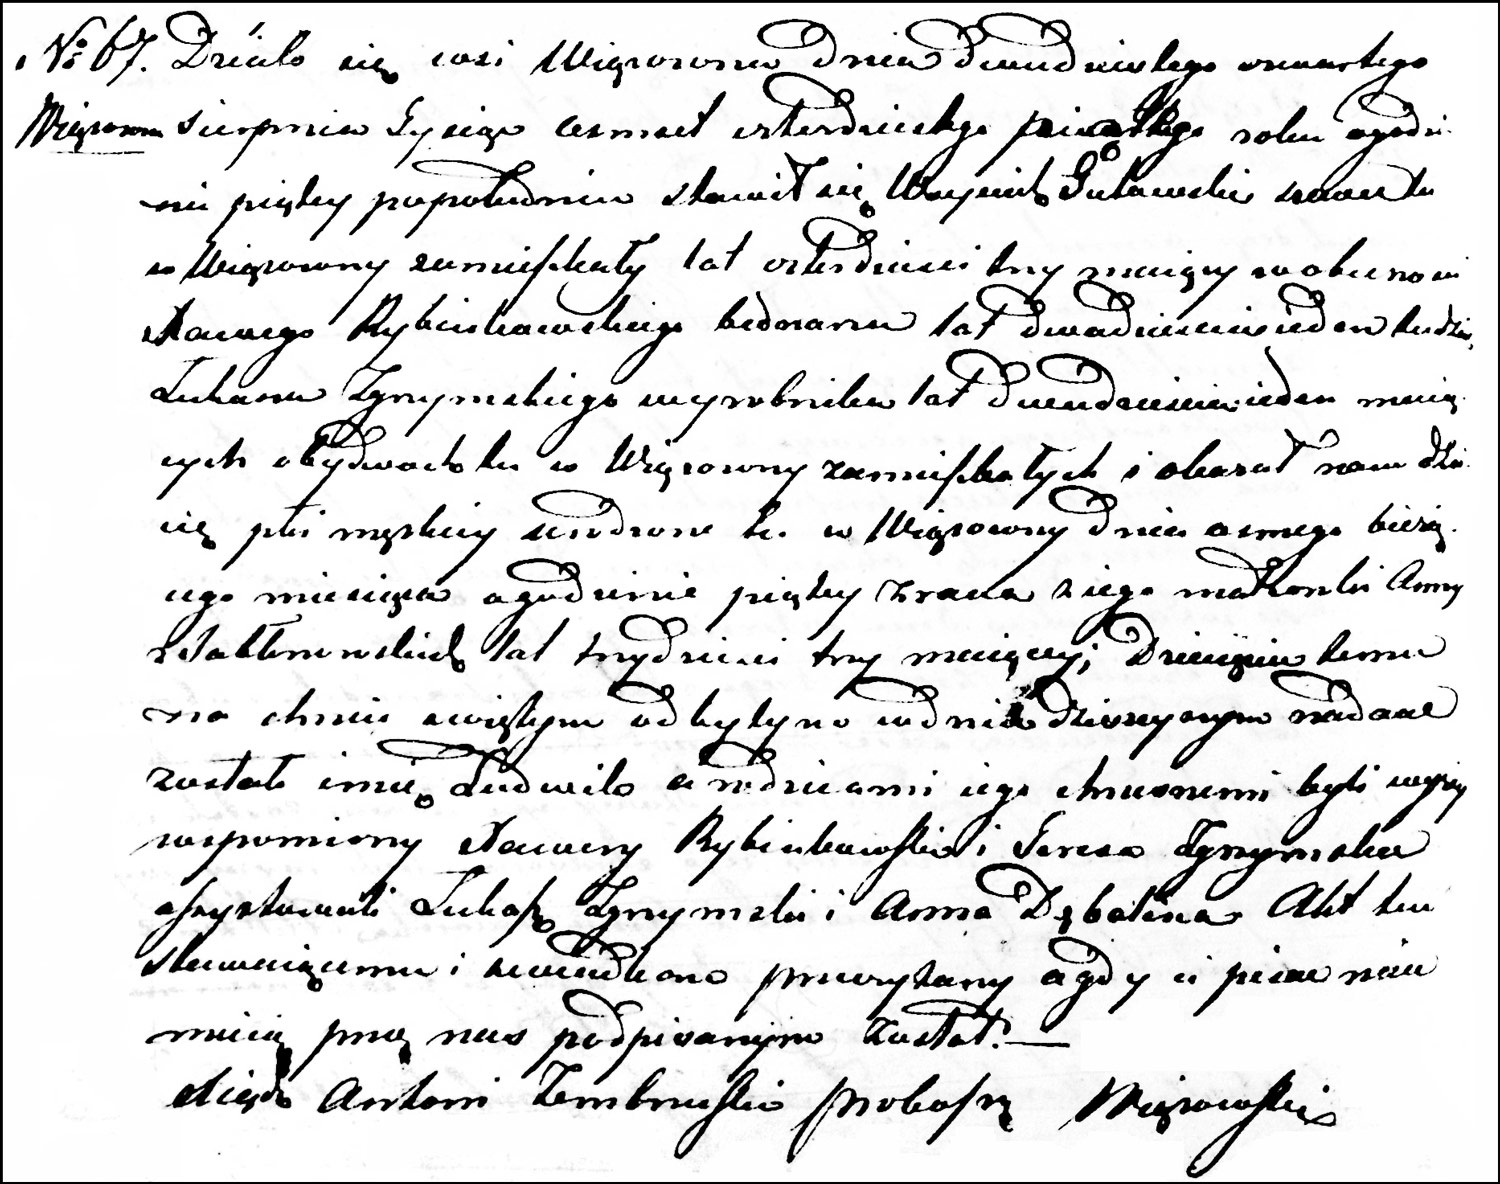 The Birth and Baptismal Record of Ludwik Gutowski – 1845